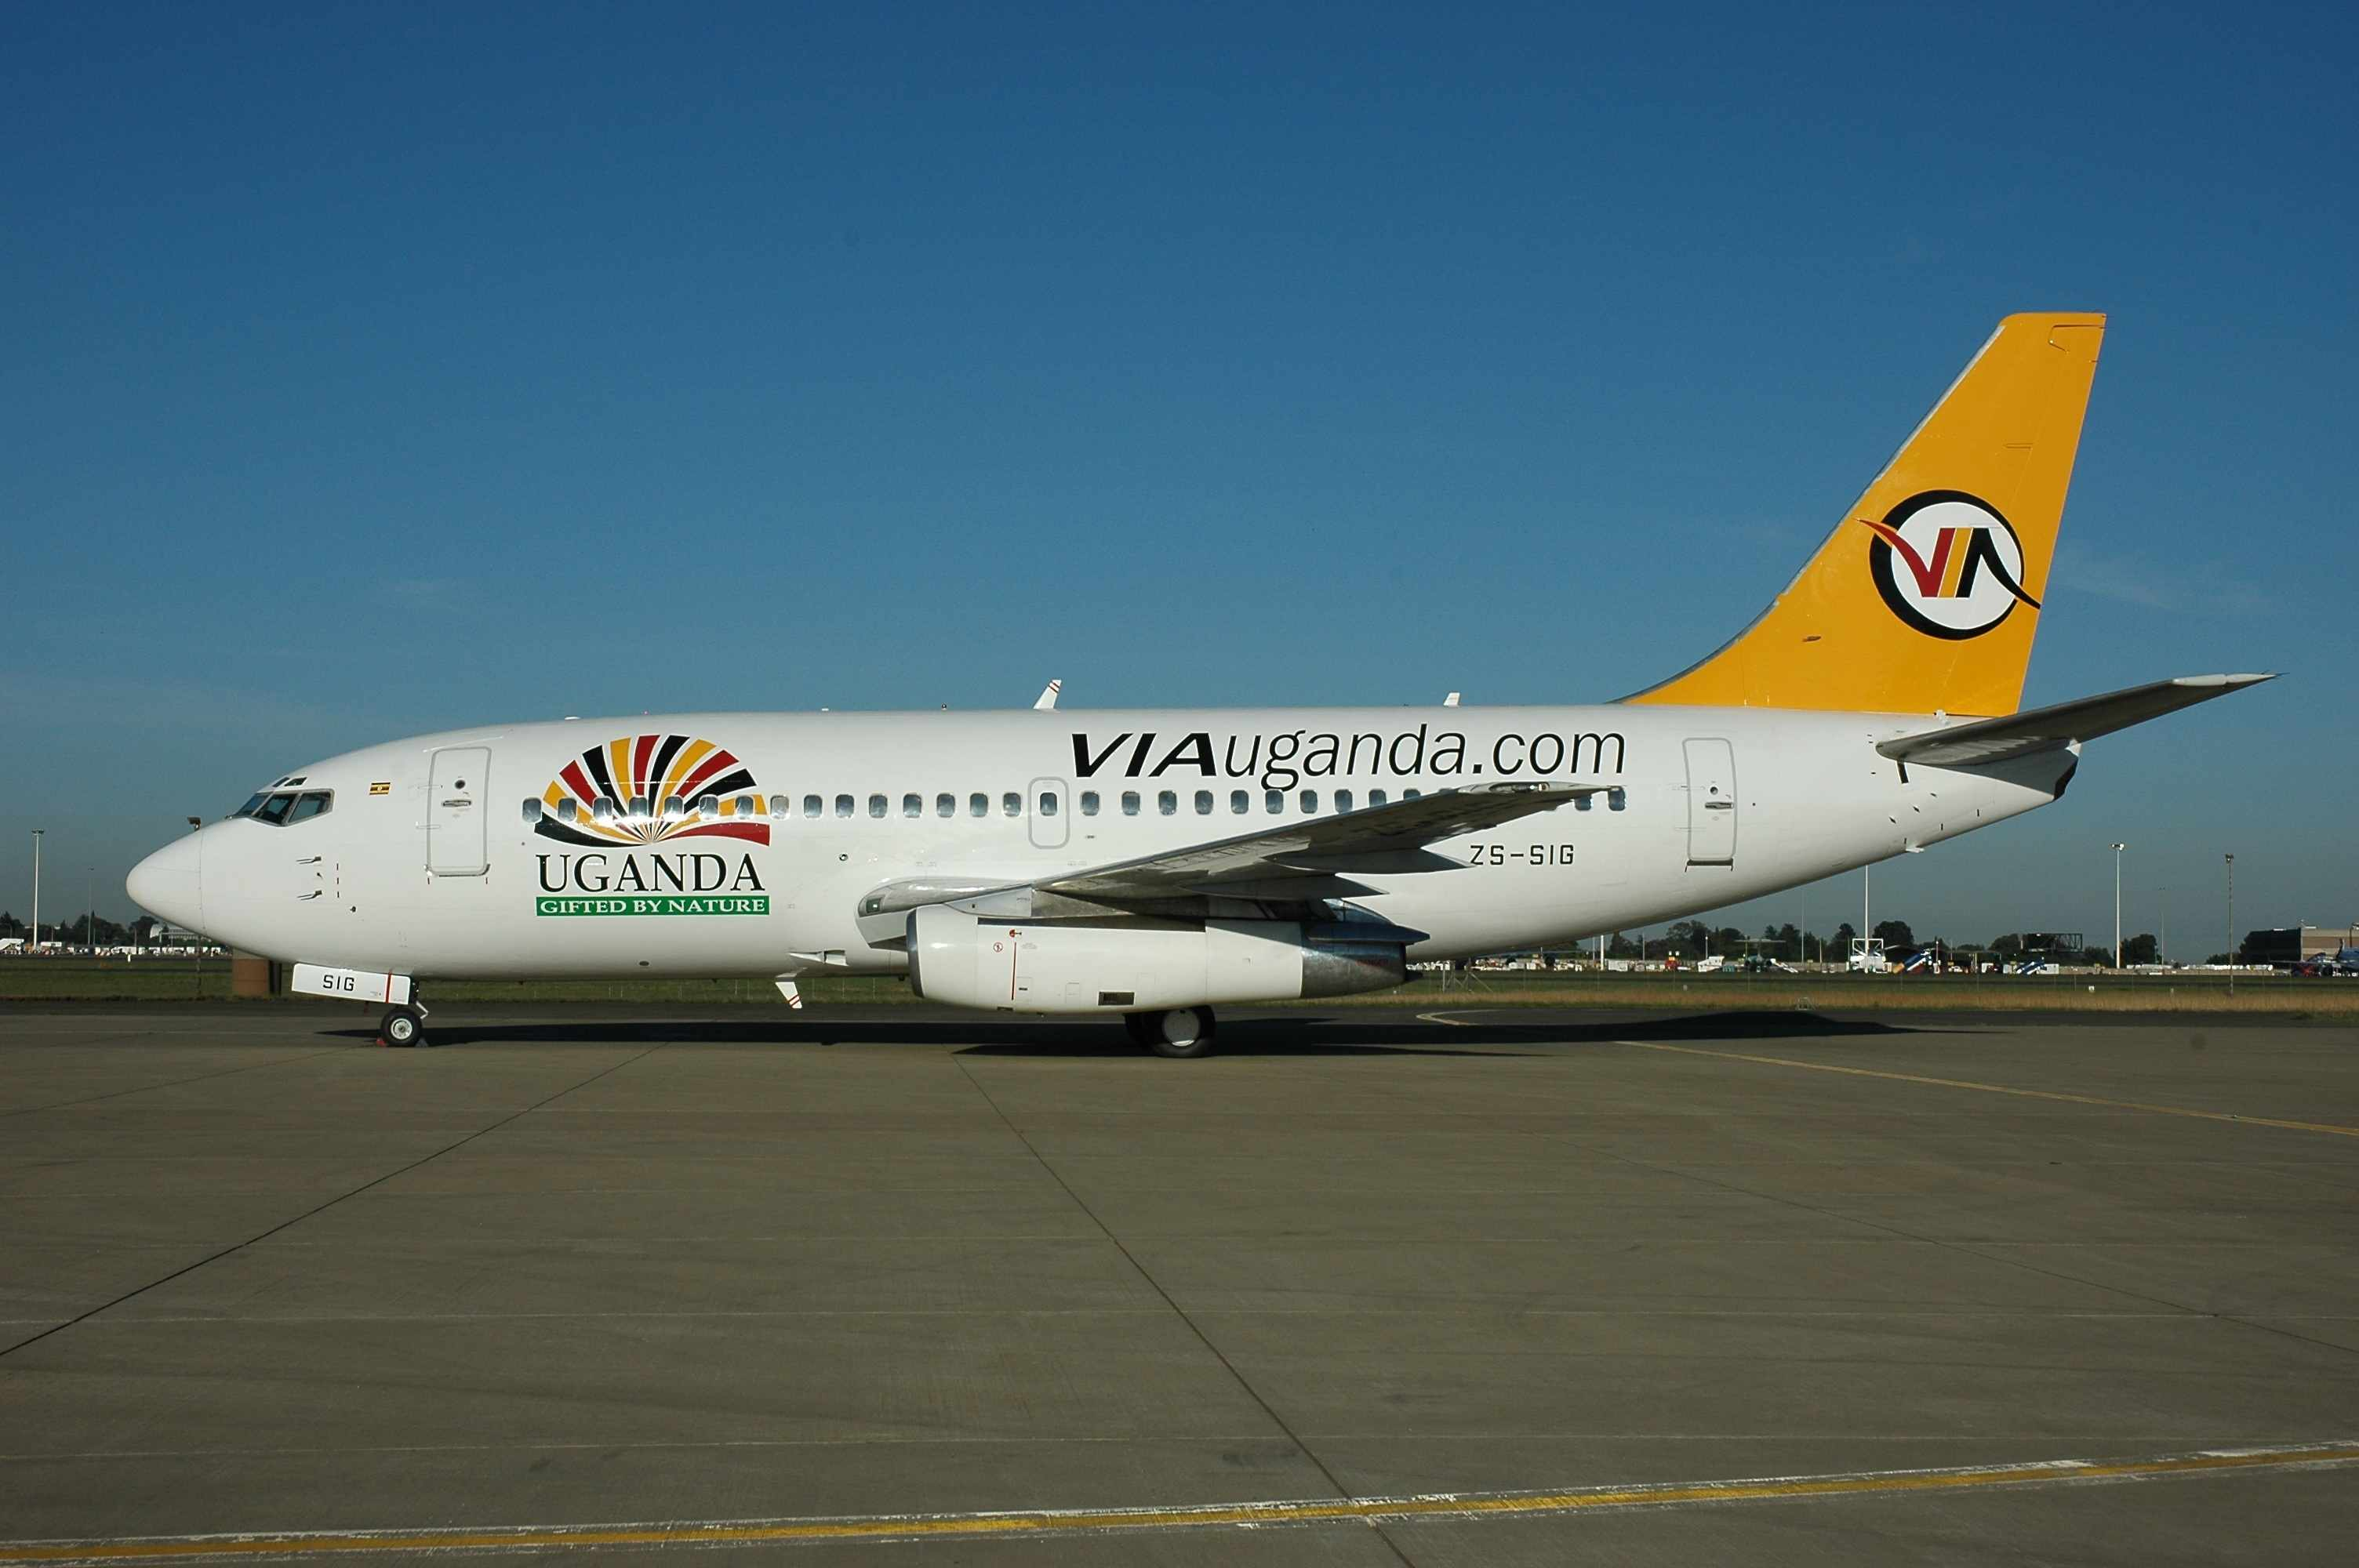 Boeing 737-244 ZS-SIG (msn 22586) was painted in this attractive livery. The airframe is currently stored at Cape Town.  Copyright Photo: www.afavia-fotos.co.za.